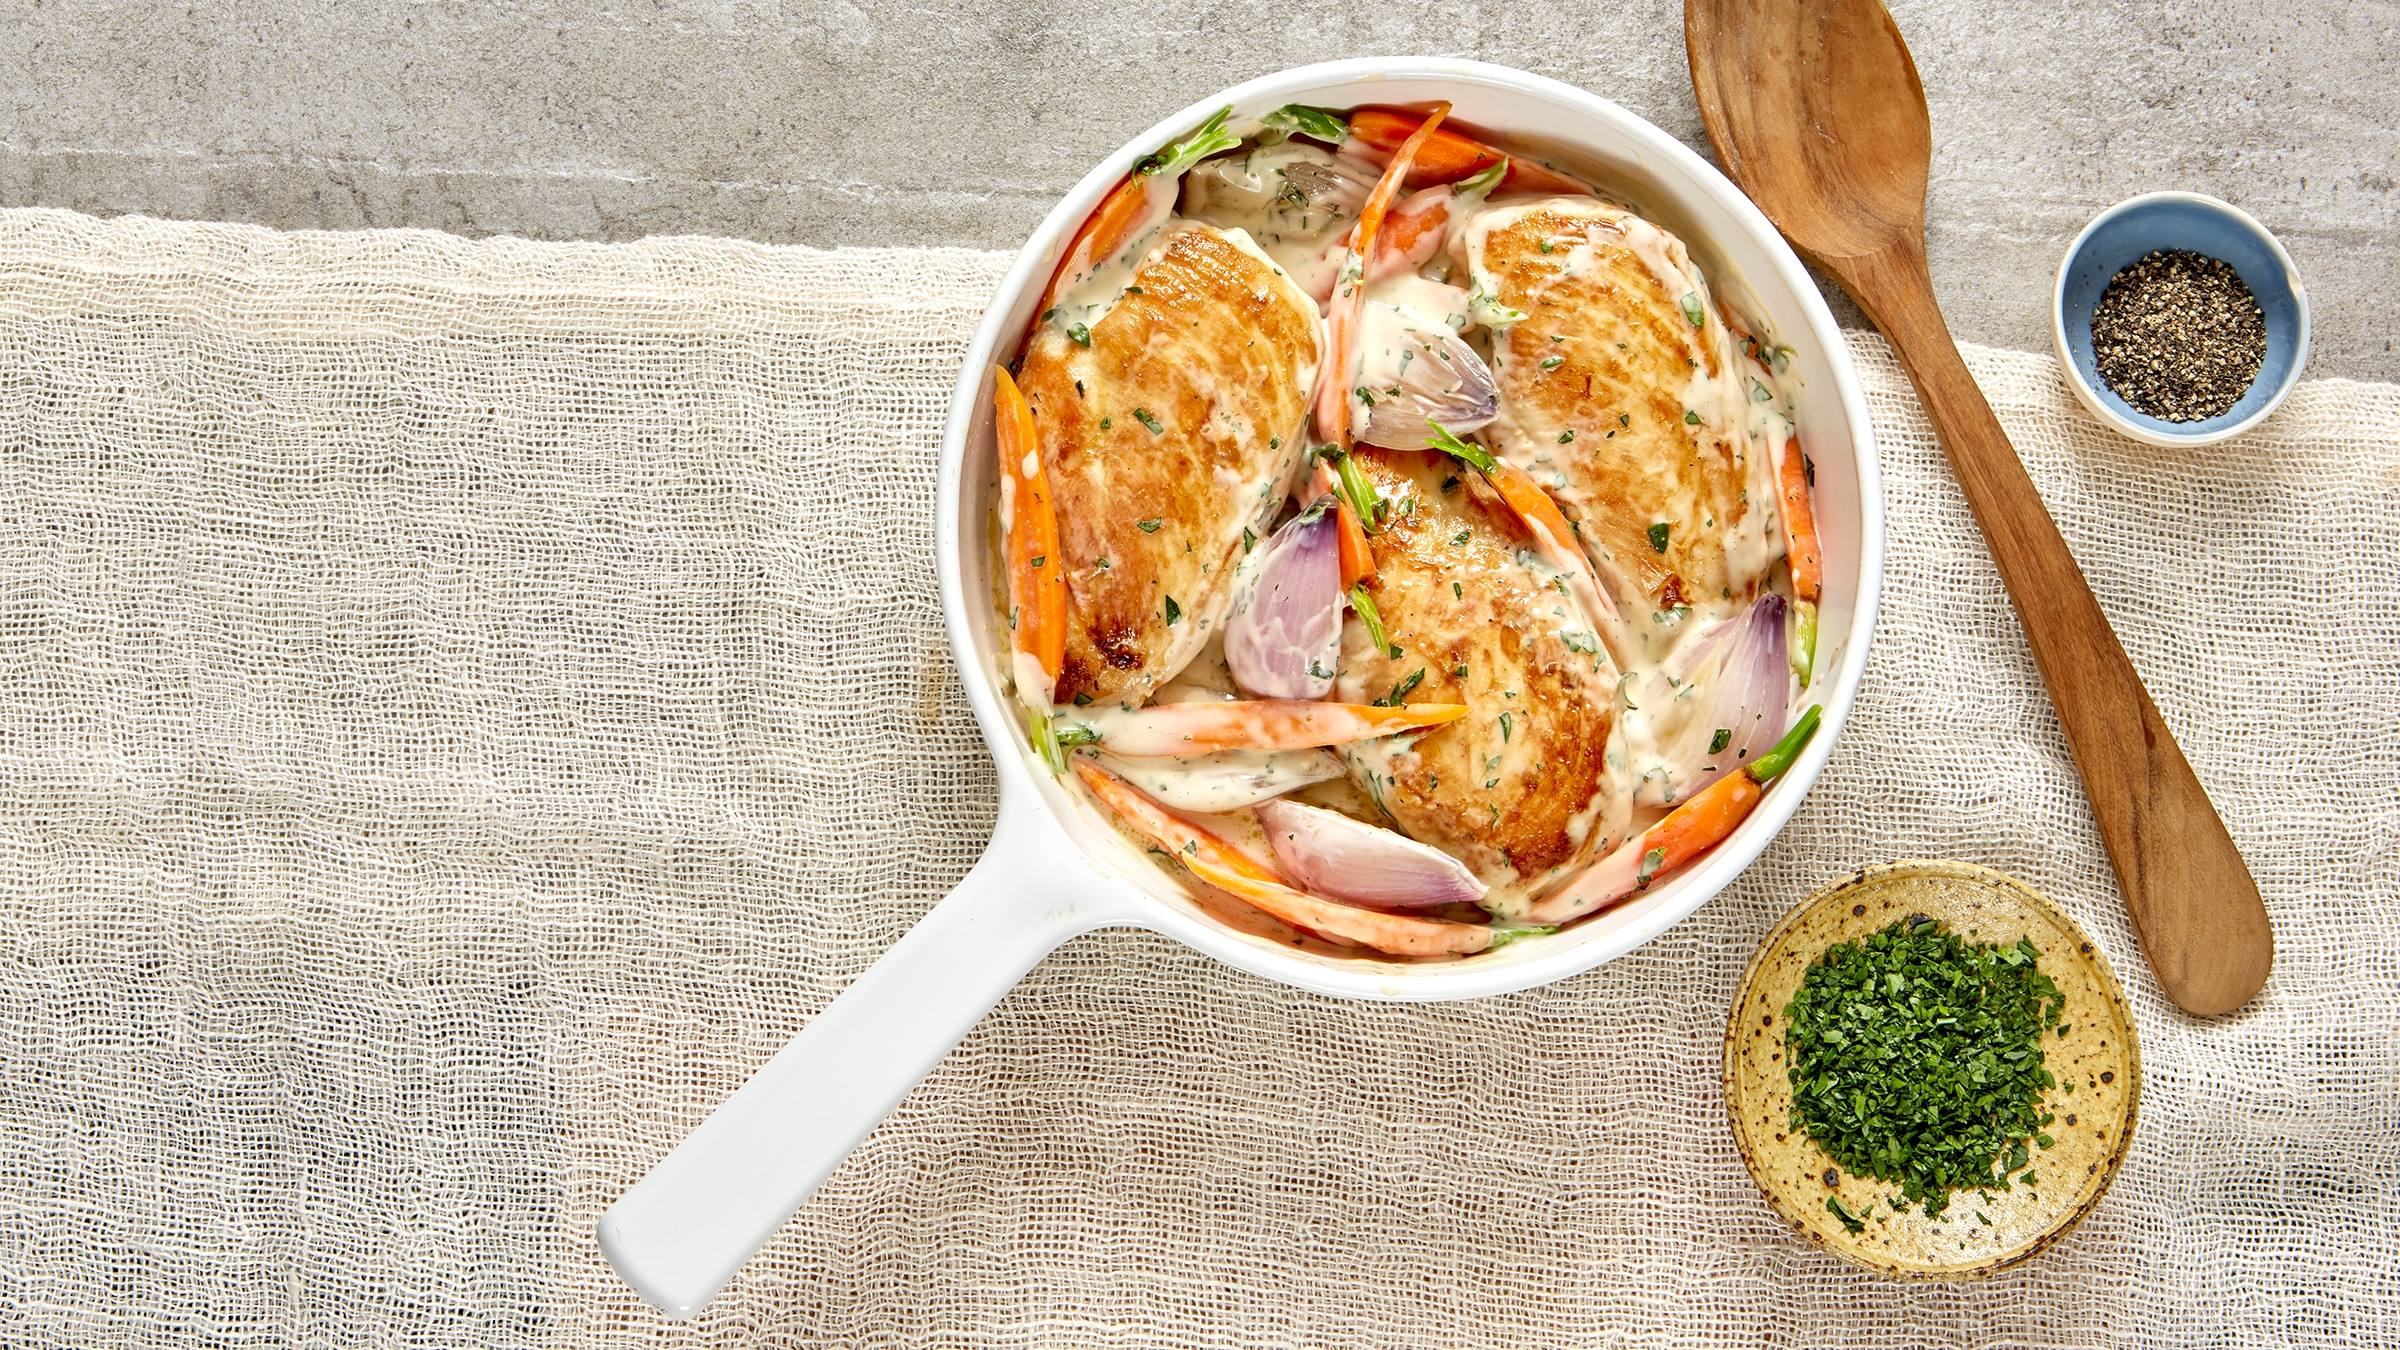 Leftover Chicken & Vegetable Skillet with Creamy Herb Sauce